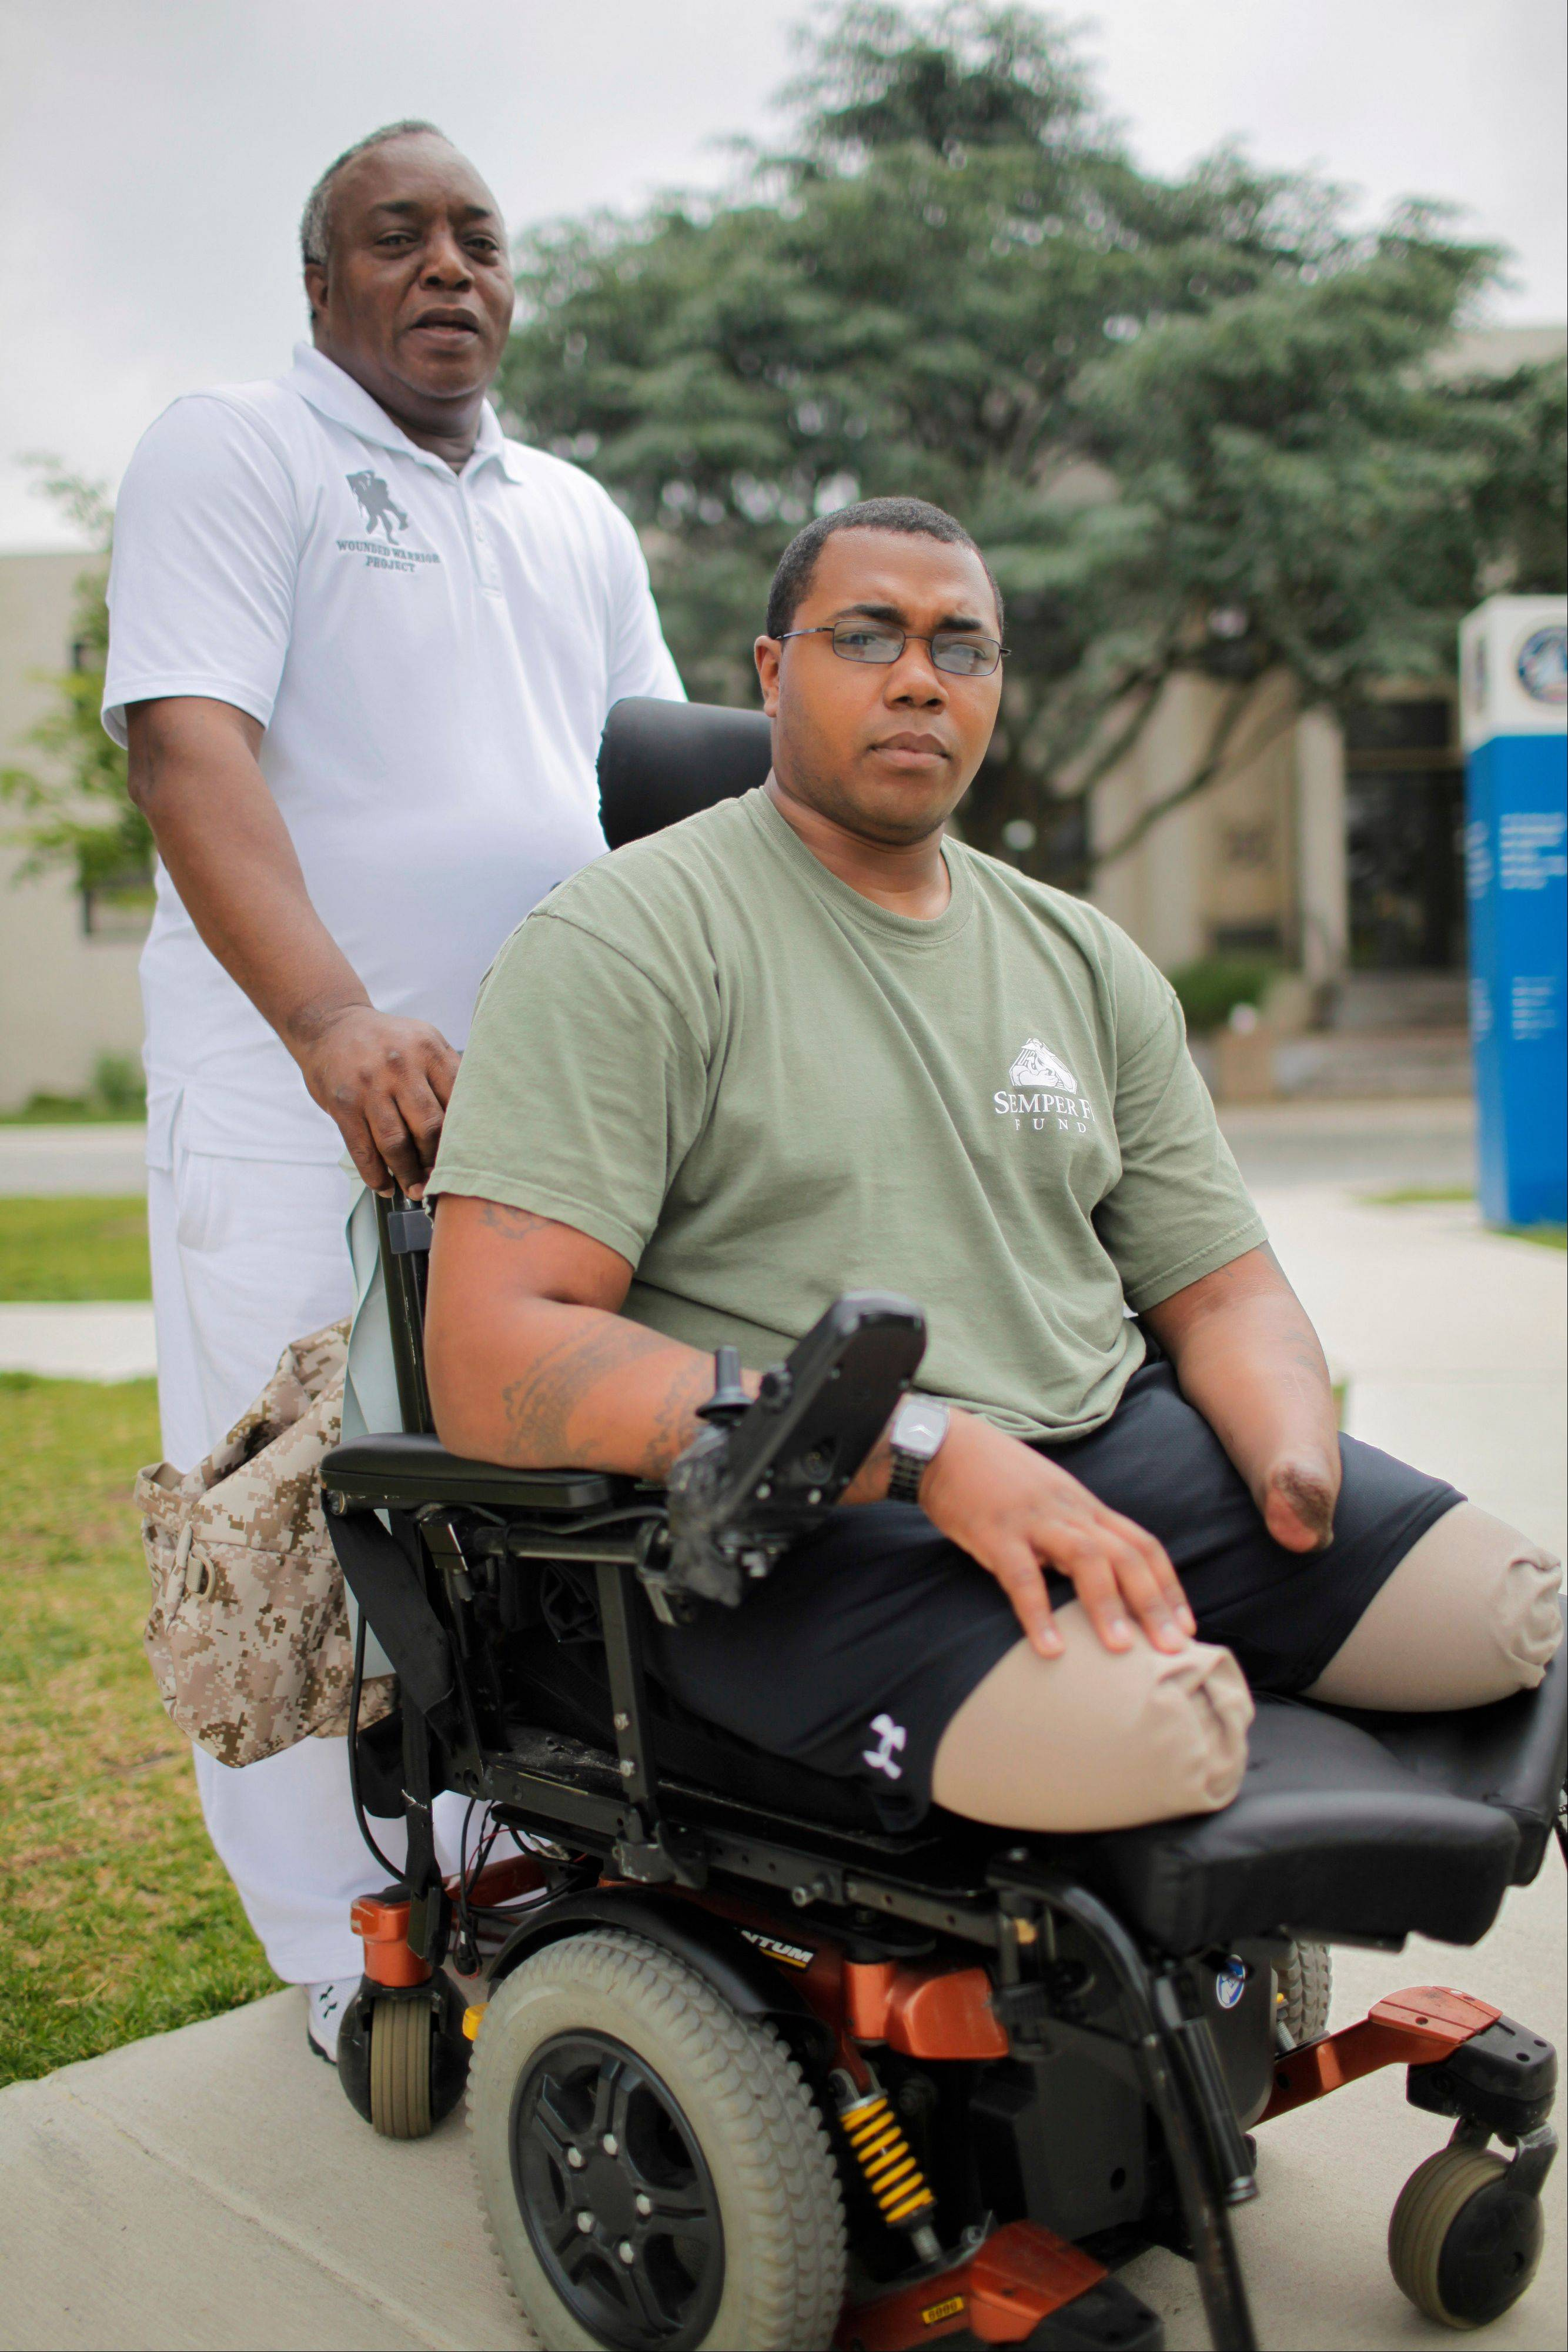 Larry Bailey, left, stands with his son, Marine Cpl. Larry Bailey II of Zion at Walter Reed National Military Medical Center in Bethesda, Md. After tripping a rooftop bomb in Afghanistan in June 2011, the 26-year-old Marine remembers flying into the air, then fellow troops attending to him. Bailey, who ended up a triple amputee, expects to get a hand transplant this summer. A staggering 45 percent of the 1.6 million veterans from the wars in Iraq and Afghanistan are now seeking compensation for disabilities they say are service-related -- more than double the 21 percent who filed such claims after some previous wars, according to top government officials. The new veterans have different types of injuries than previous veterans did, in part because improvised bombs have been the main weapon and because body armor and improved battlefield care allowed many of them to survive wounds that in past wars proved fatal.